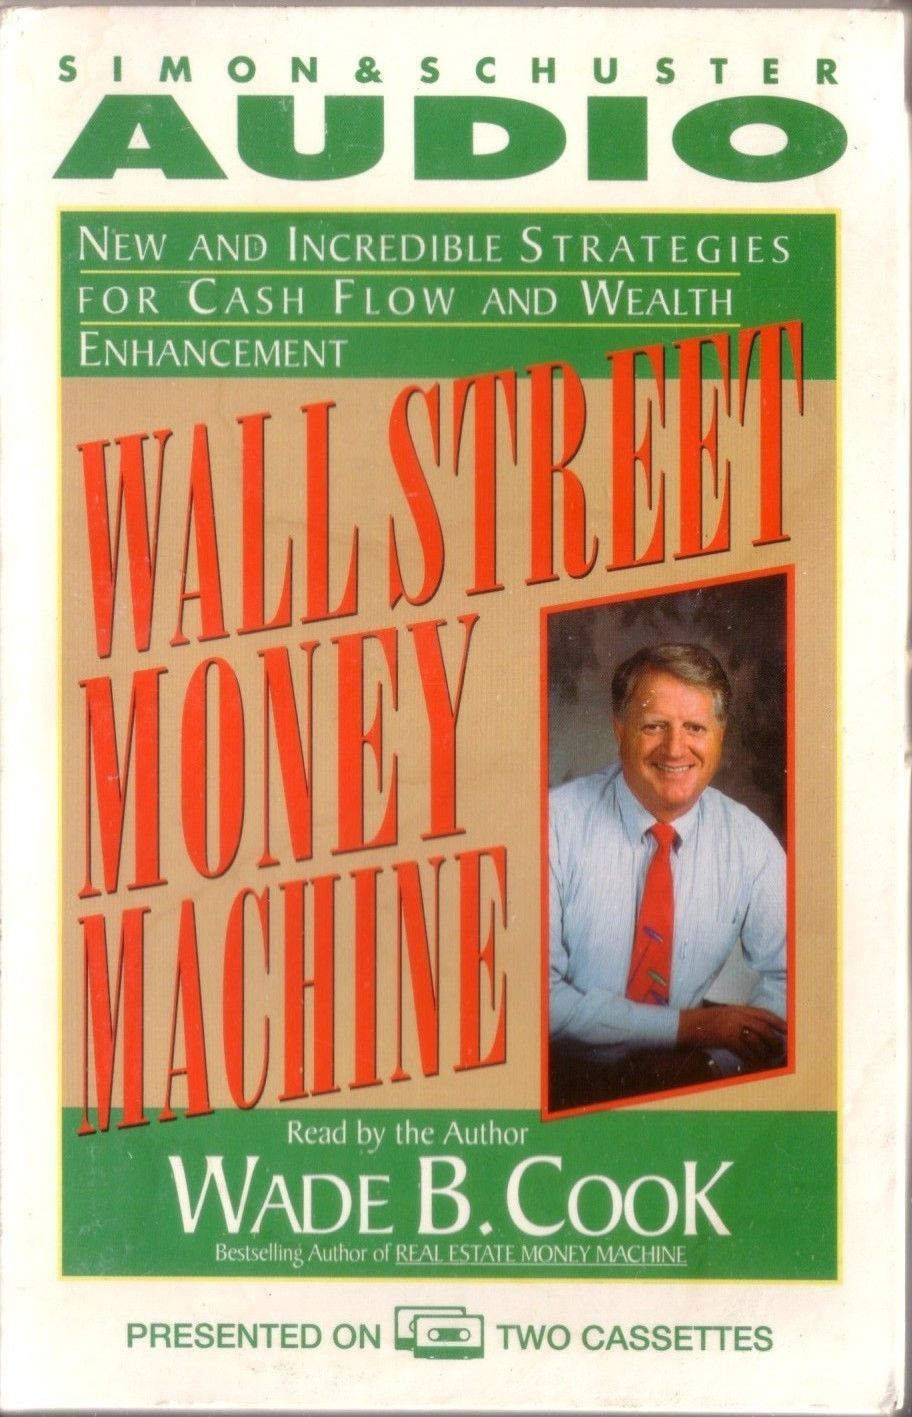 Wall street money machine set new and incredible strategies for cash flow audio book